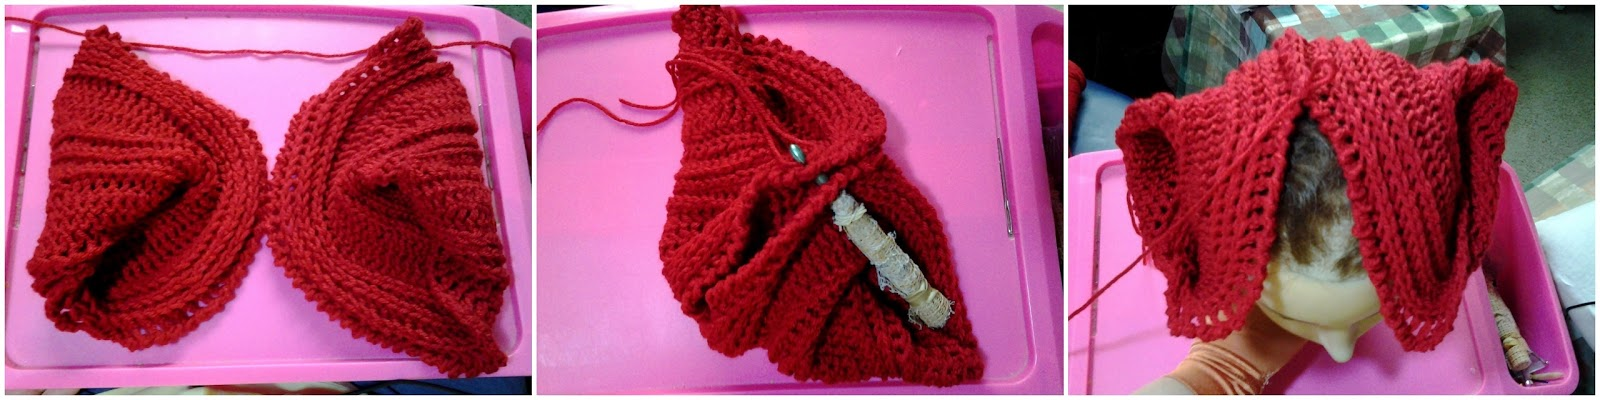 Tips for Constructing the Twisted Cat Ears Crochet Hat